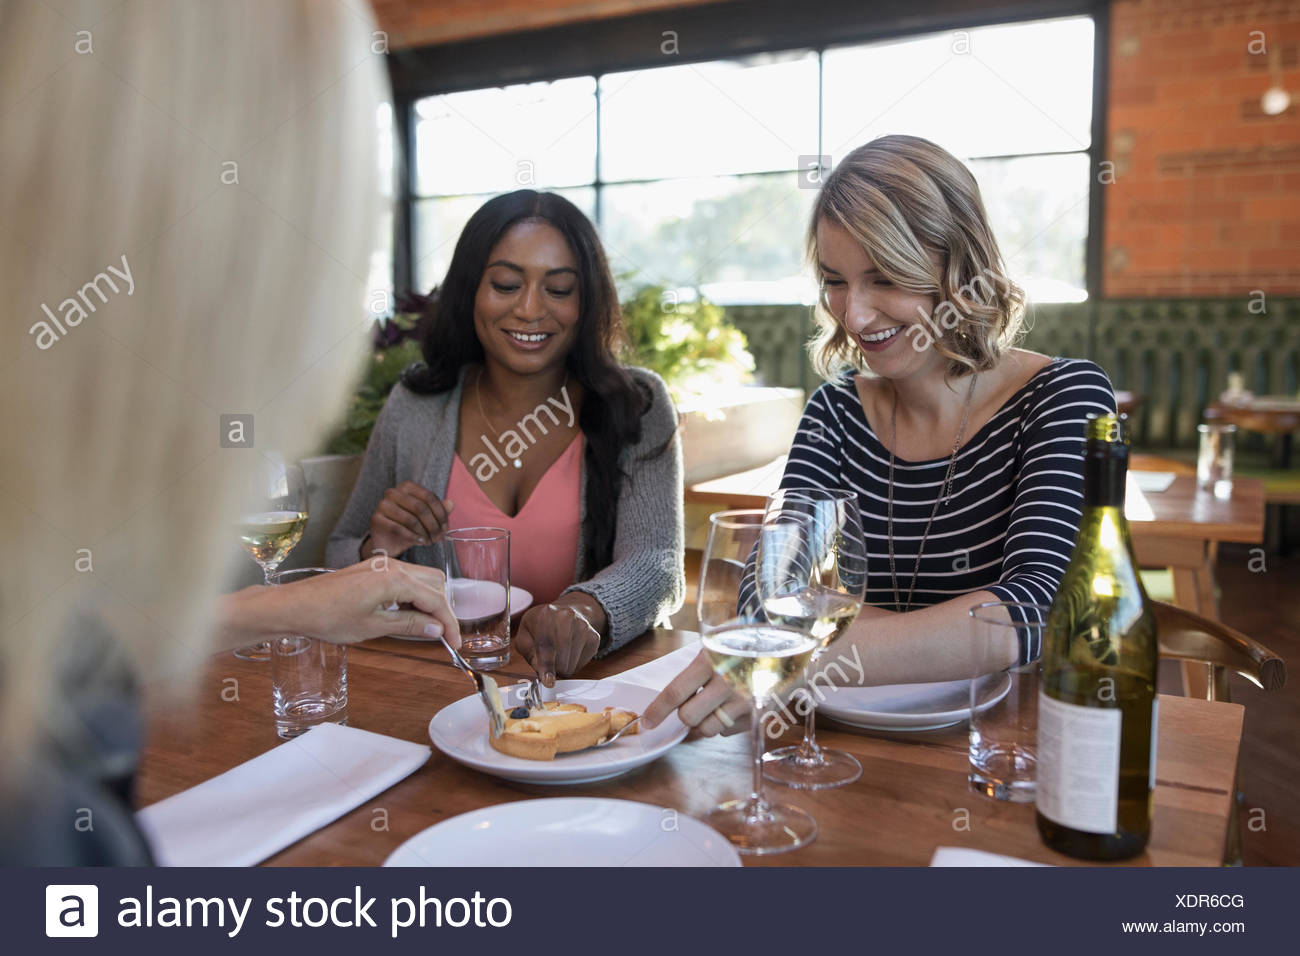 Women friends sharing dessert and drinking white wine, dining at restaurant table - Stock Image